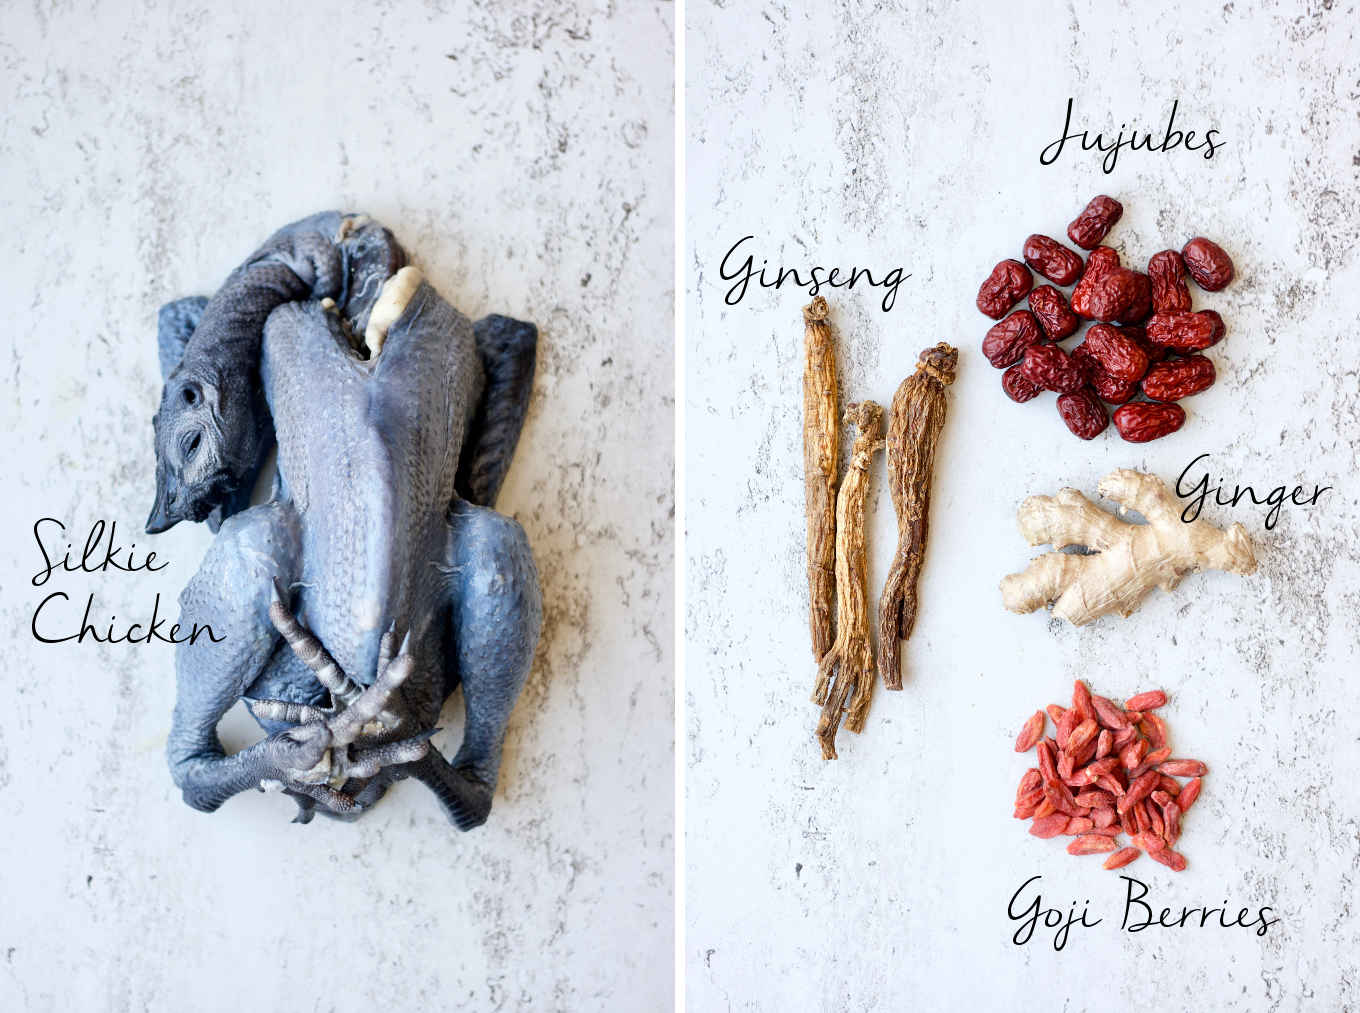 Ingredients for this recipe: silkie chicken (a.k.a. black chicken), ginseng, jujubes, ginger and goji berries.